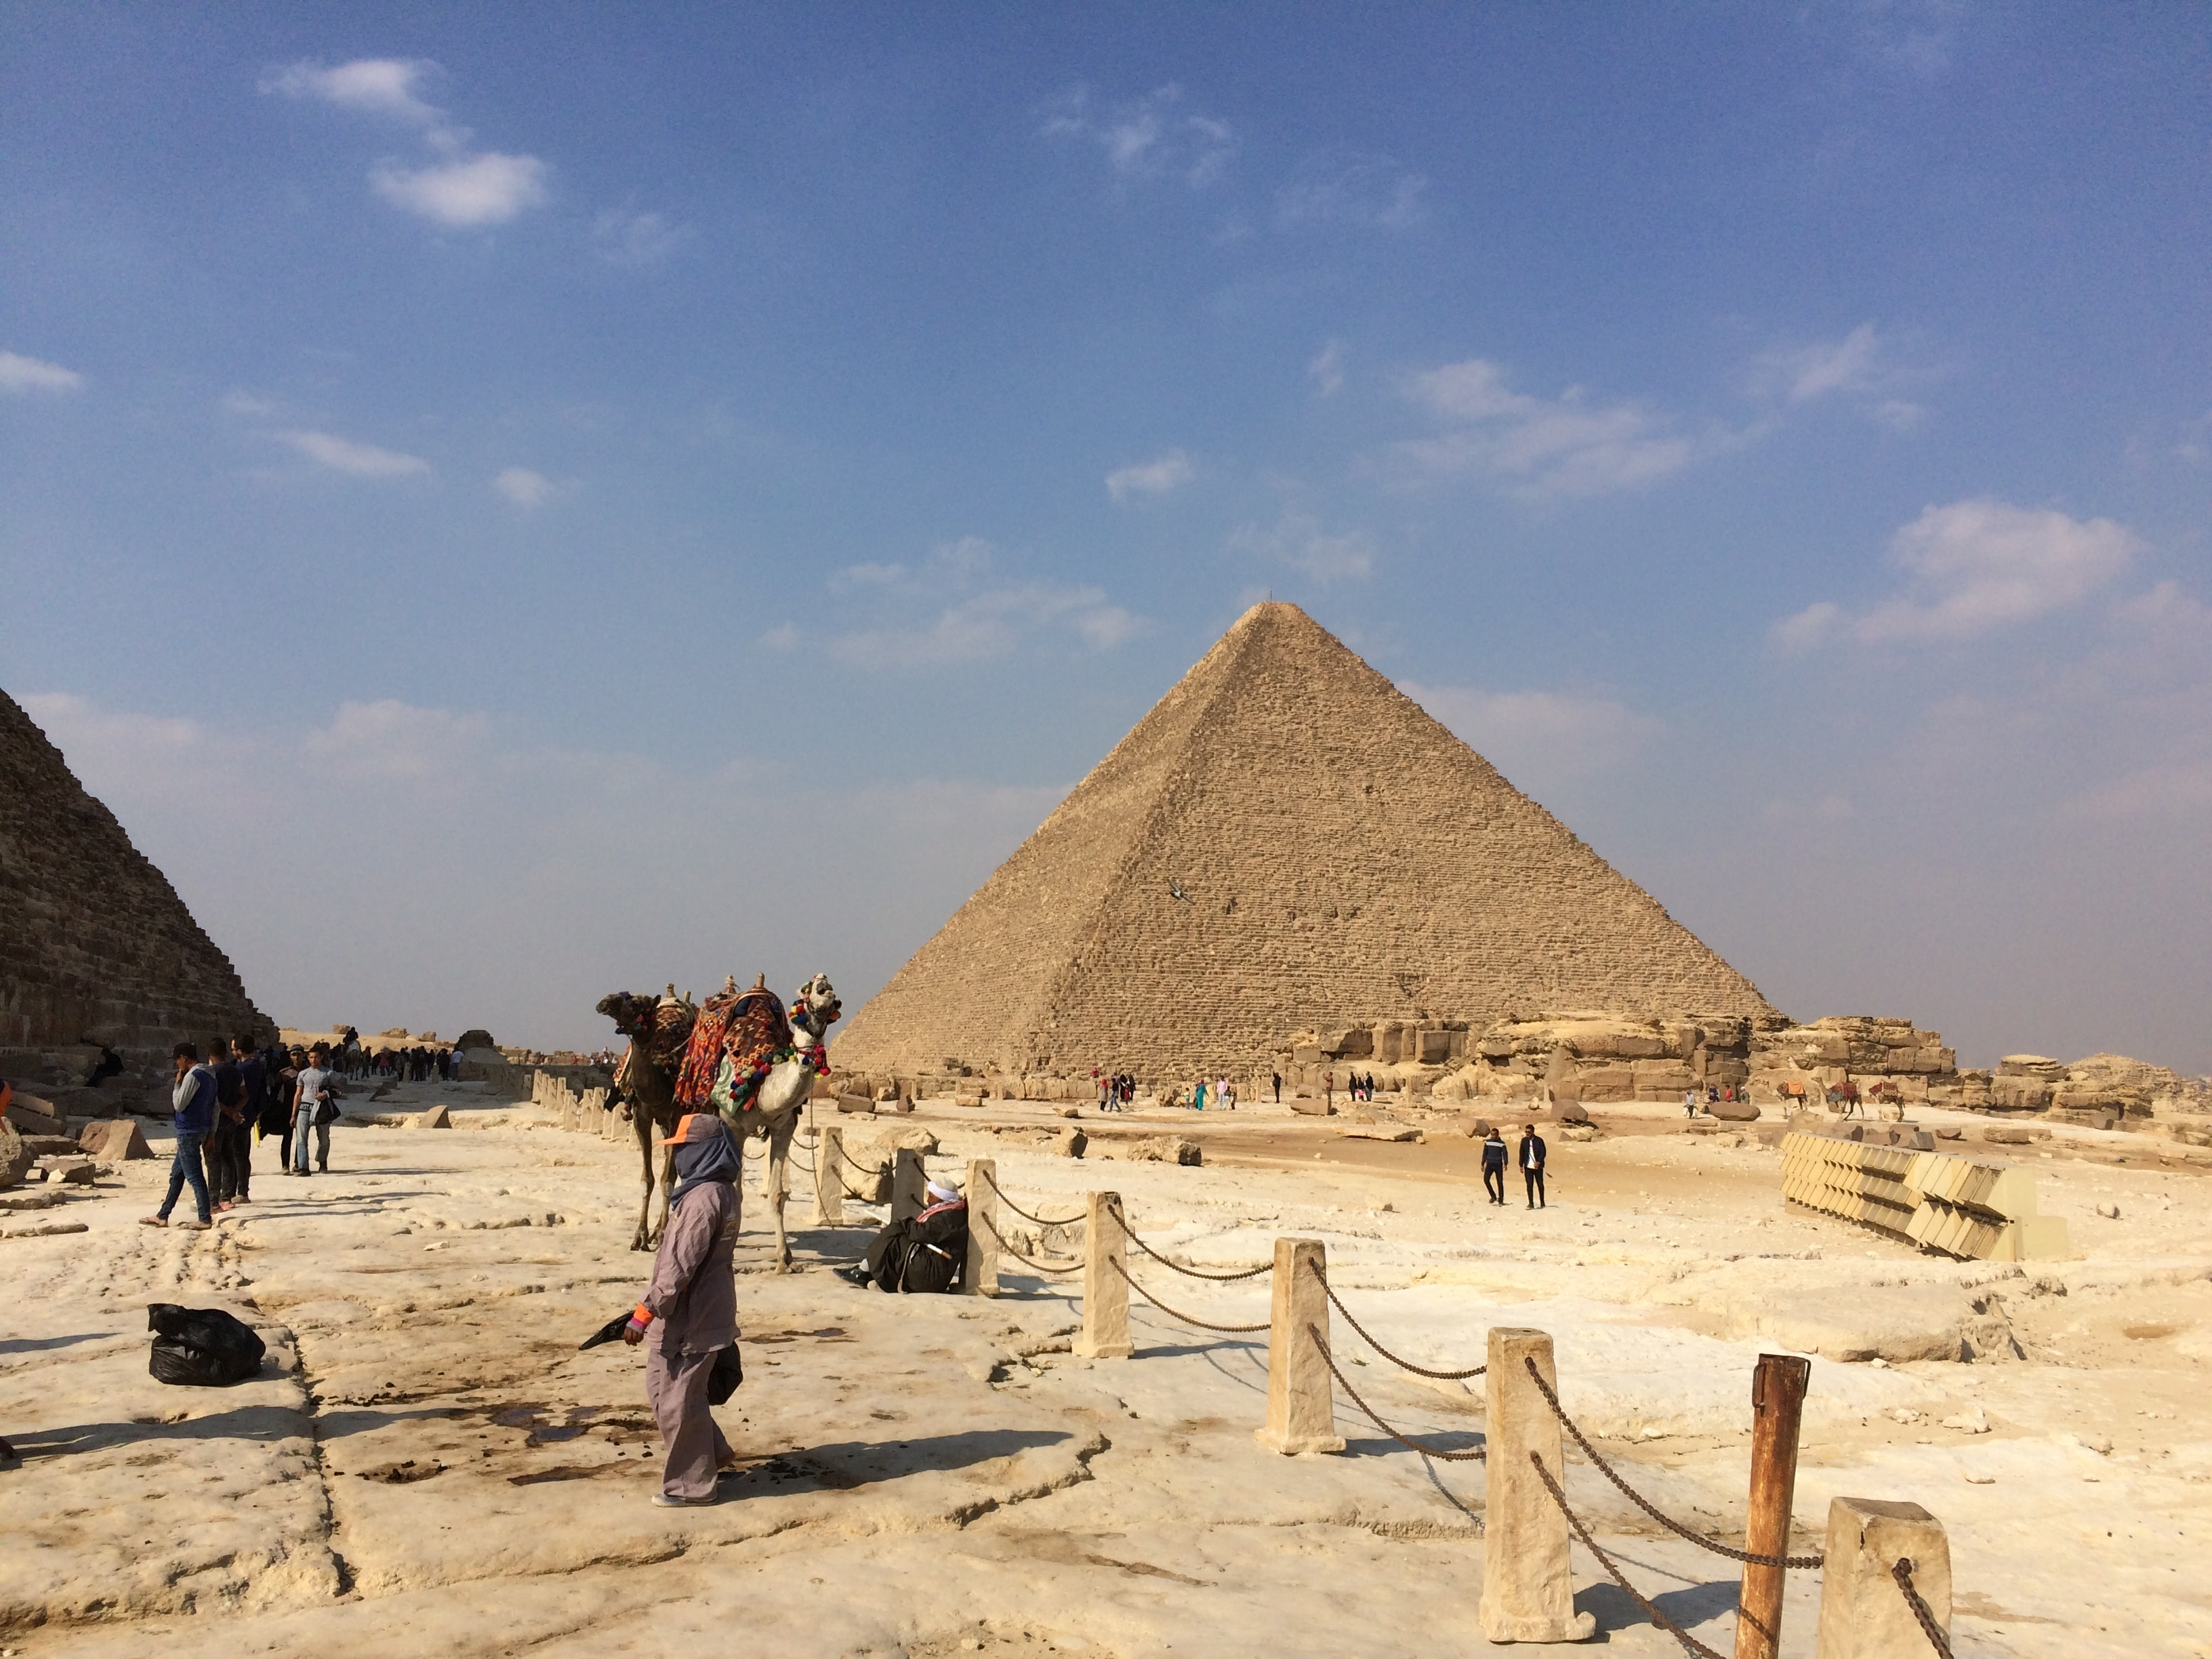 people standing near Pyramid of Giza under blue and white sky at during daytime